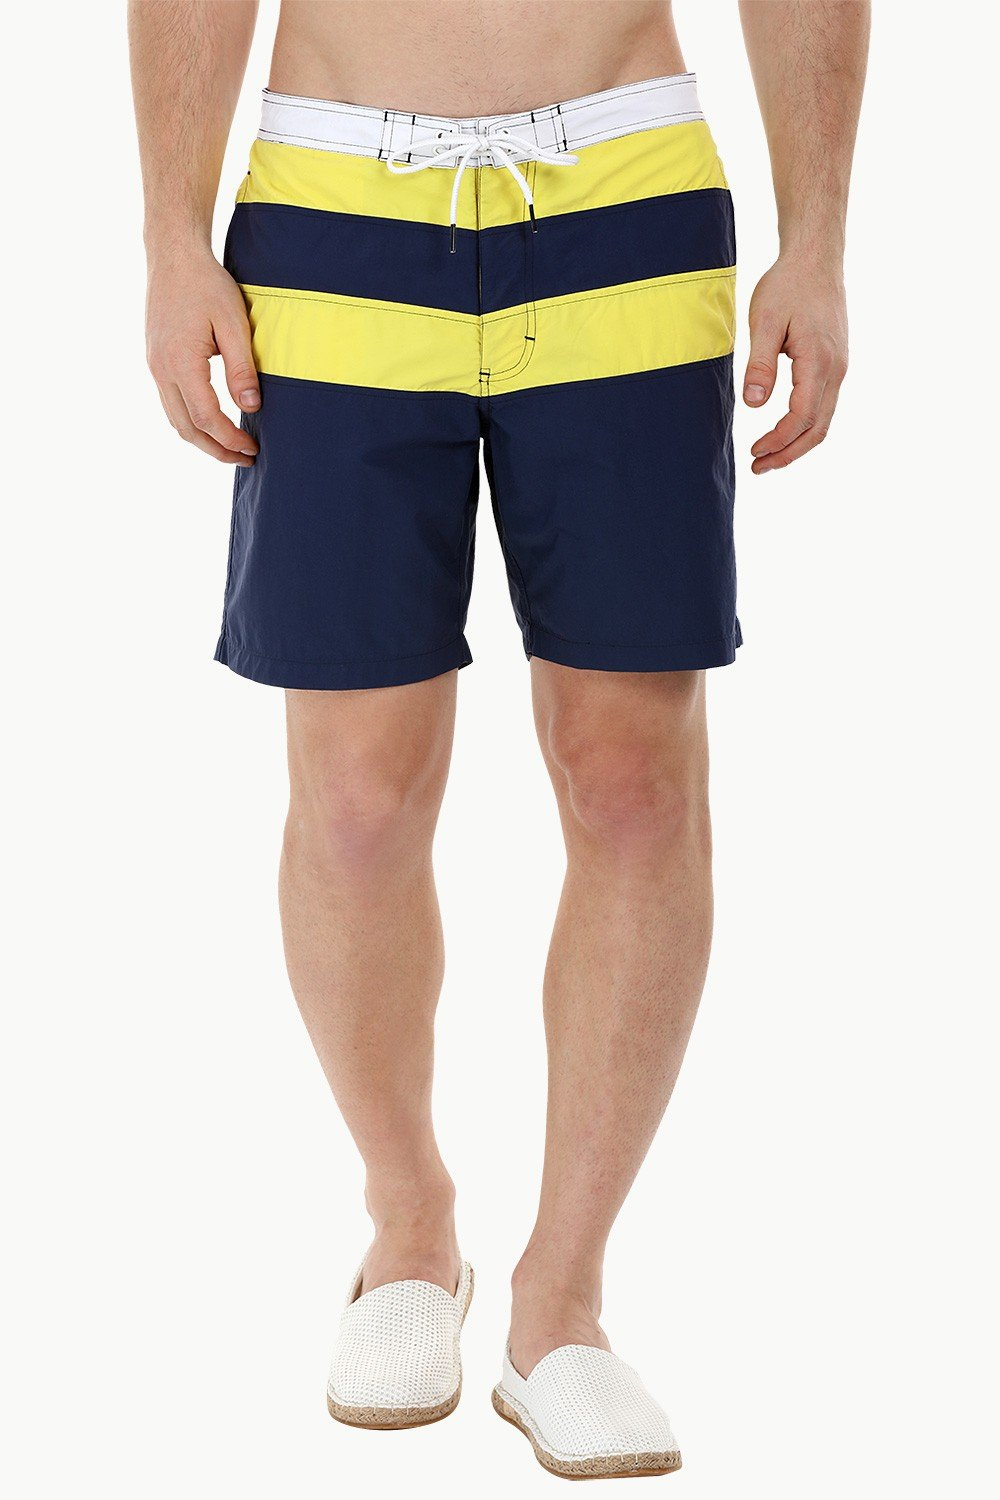 72b070fb65 Buy Online Board Striped Swim Shorts in White, Yellow and Navy ...